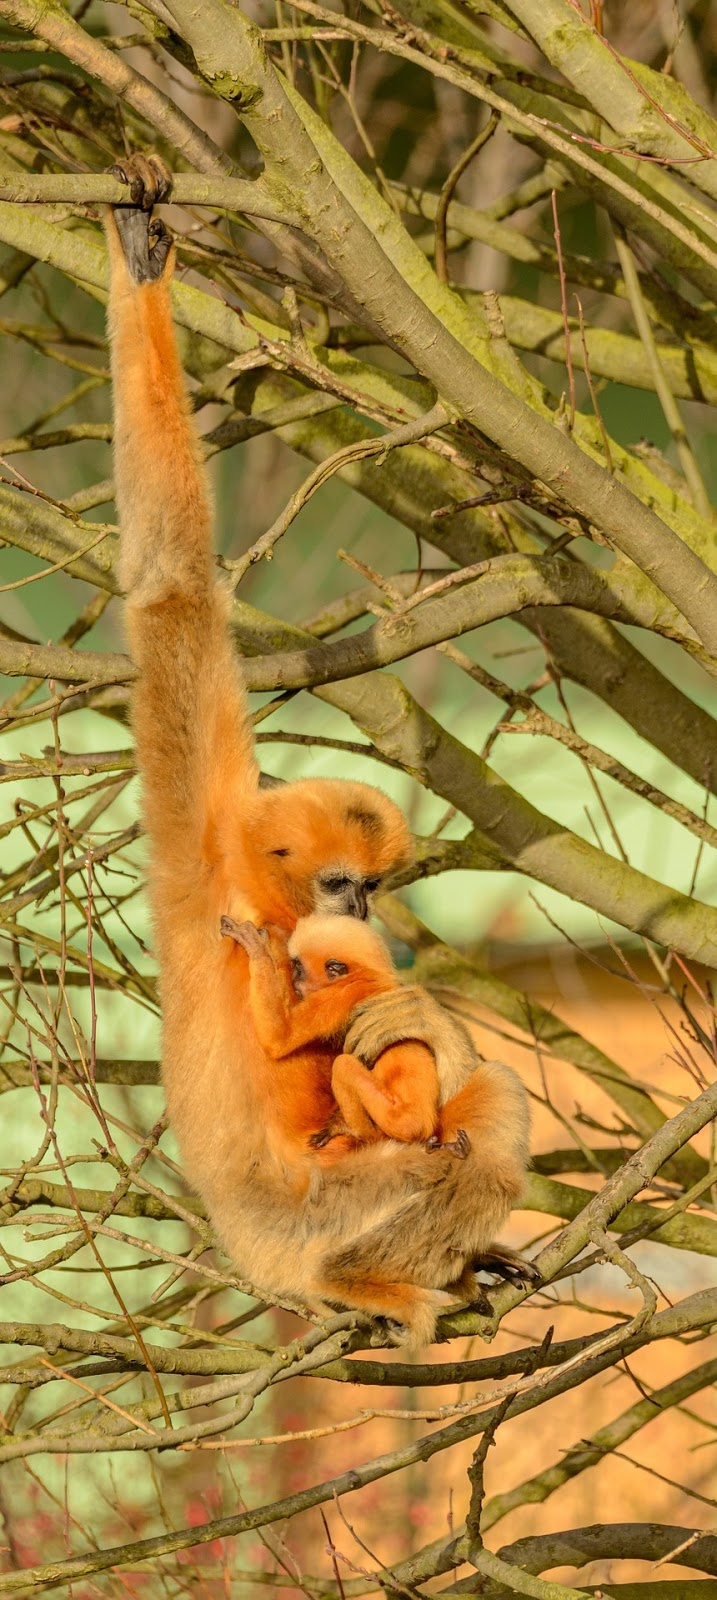 Gibbon mother and child embrace.